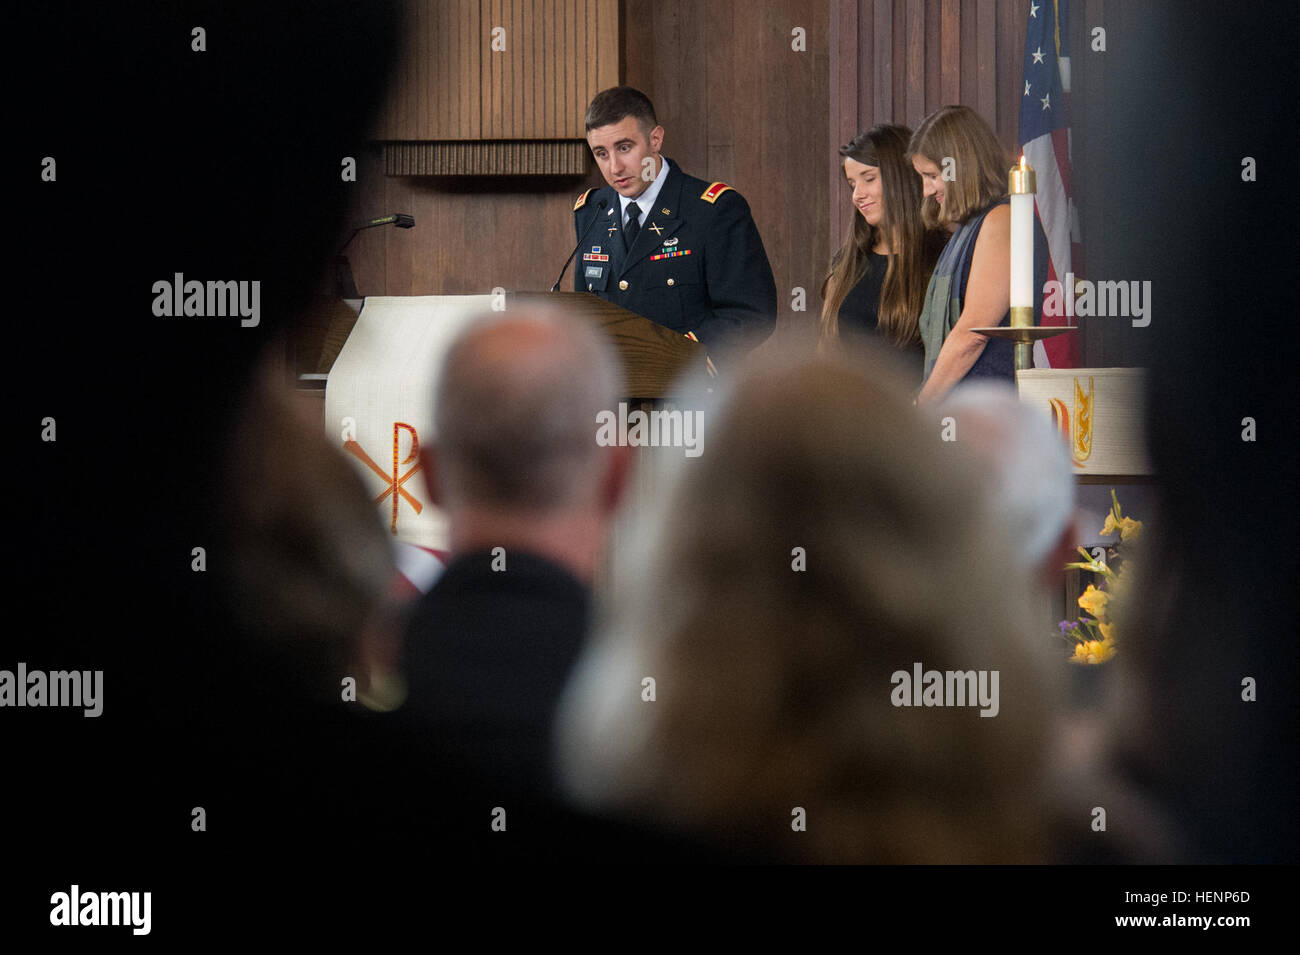 U.S. Army 1st Lt. Matthew Greene delivers a eulogy for his father, U.S. Army Maj. Gen. Harold J. Greene, during - Stock Image